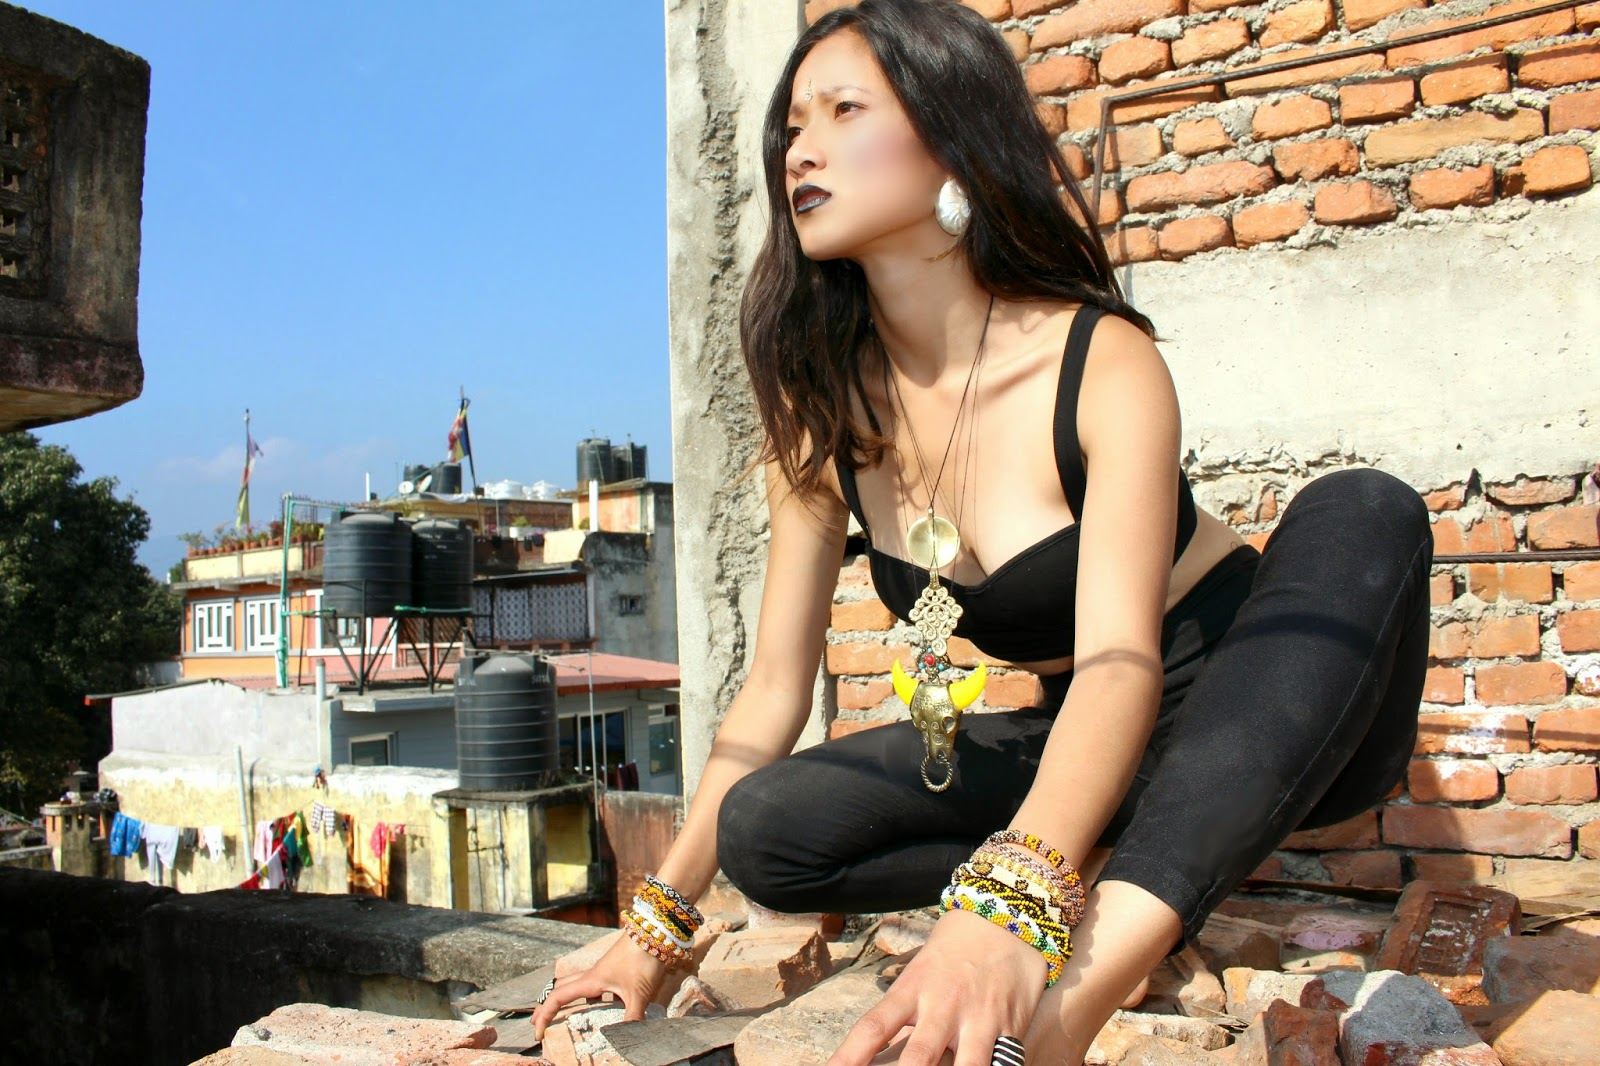 Lotus Sky, dark boho jewelry, Kathmandu rooftop, Tibetan jewelry, fierce ethnic